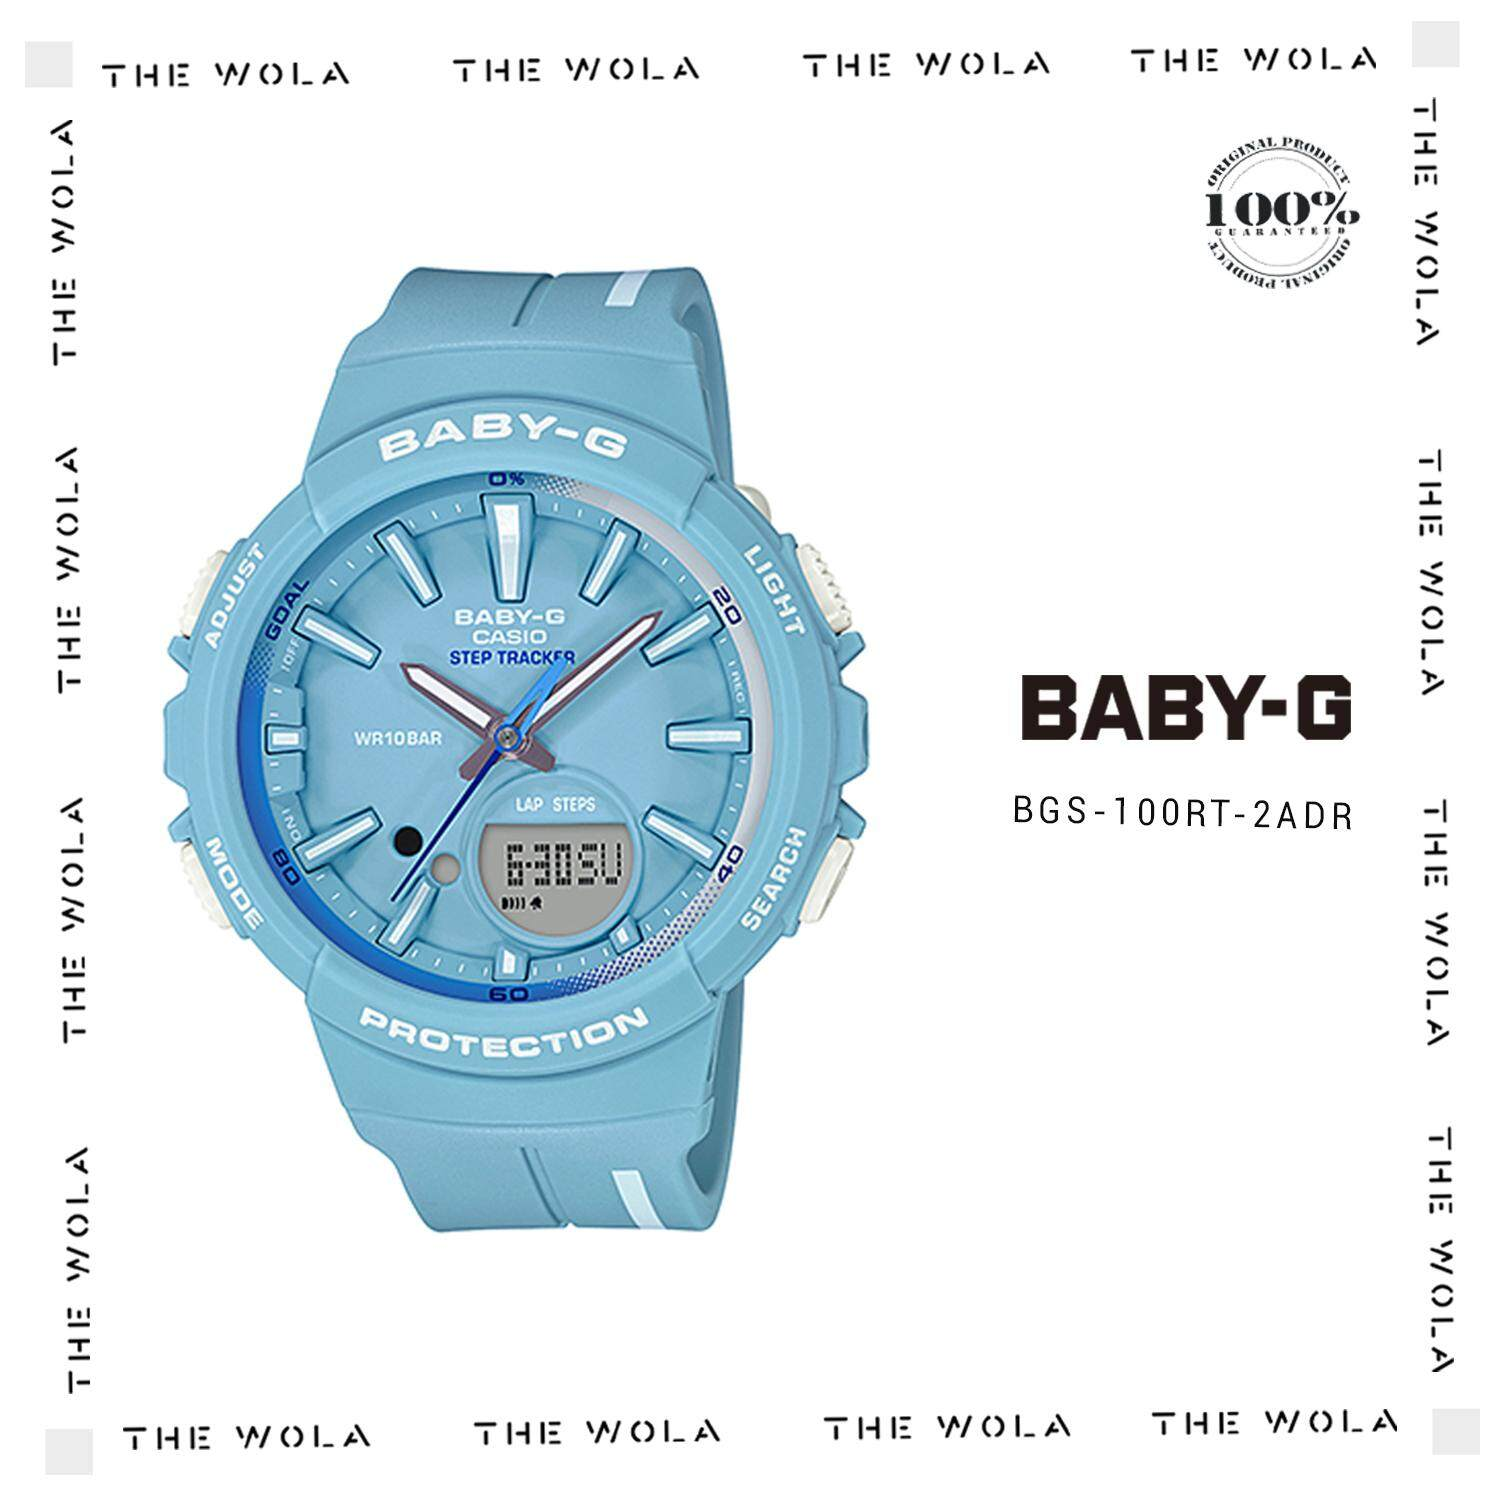 Casio Baby G Watches Price In Malaysia Best Jam Tangan Wanita Original Bgd 501 4 Bgs 100rt 2adr